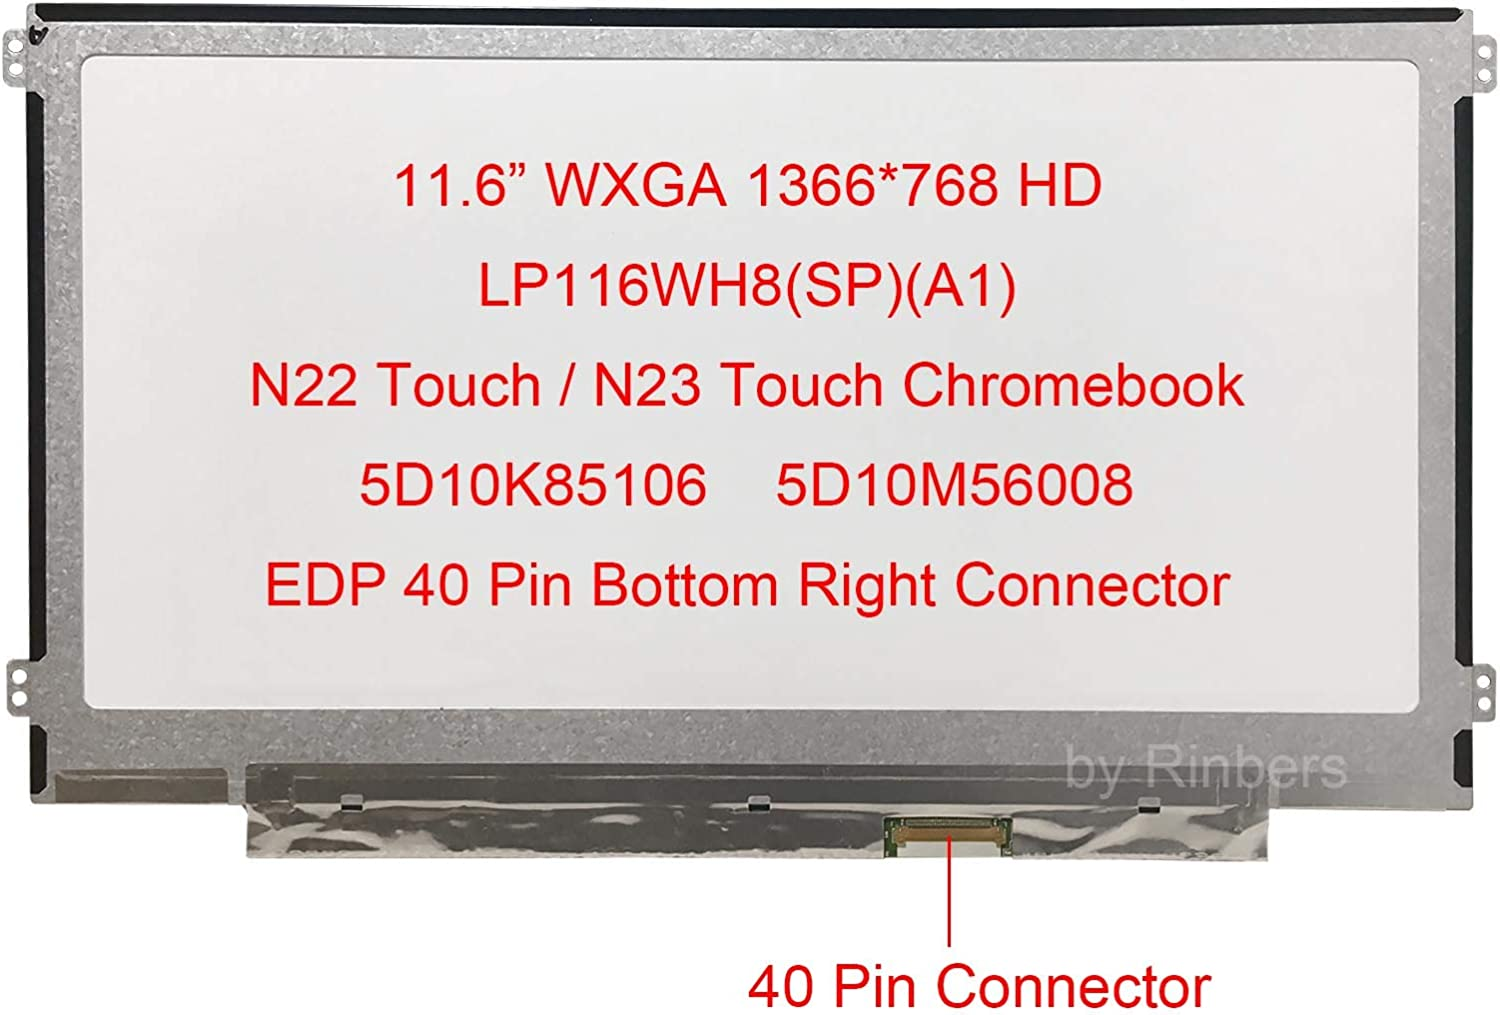 Rinbers LP116WH8(SP)(A1) SPA1 11.6 inch WXGA HD 1366x768 LCD Touch Screen Display LED Panel Replacement for Lenovo Chromebook N22 Touch / N23 Touch 5D10K85106 5D10M56008